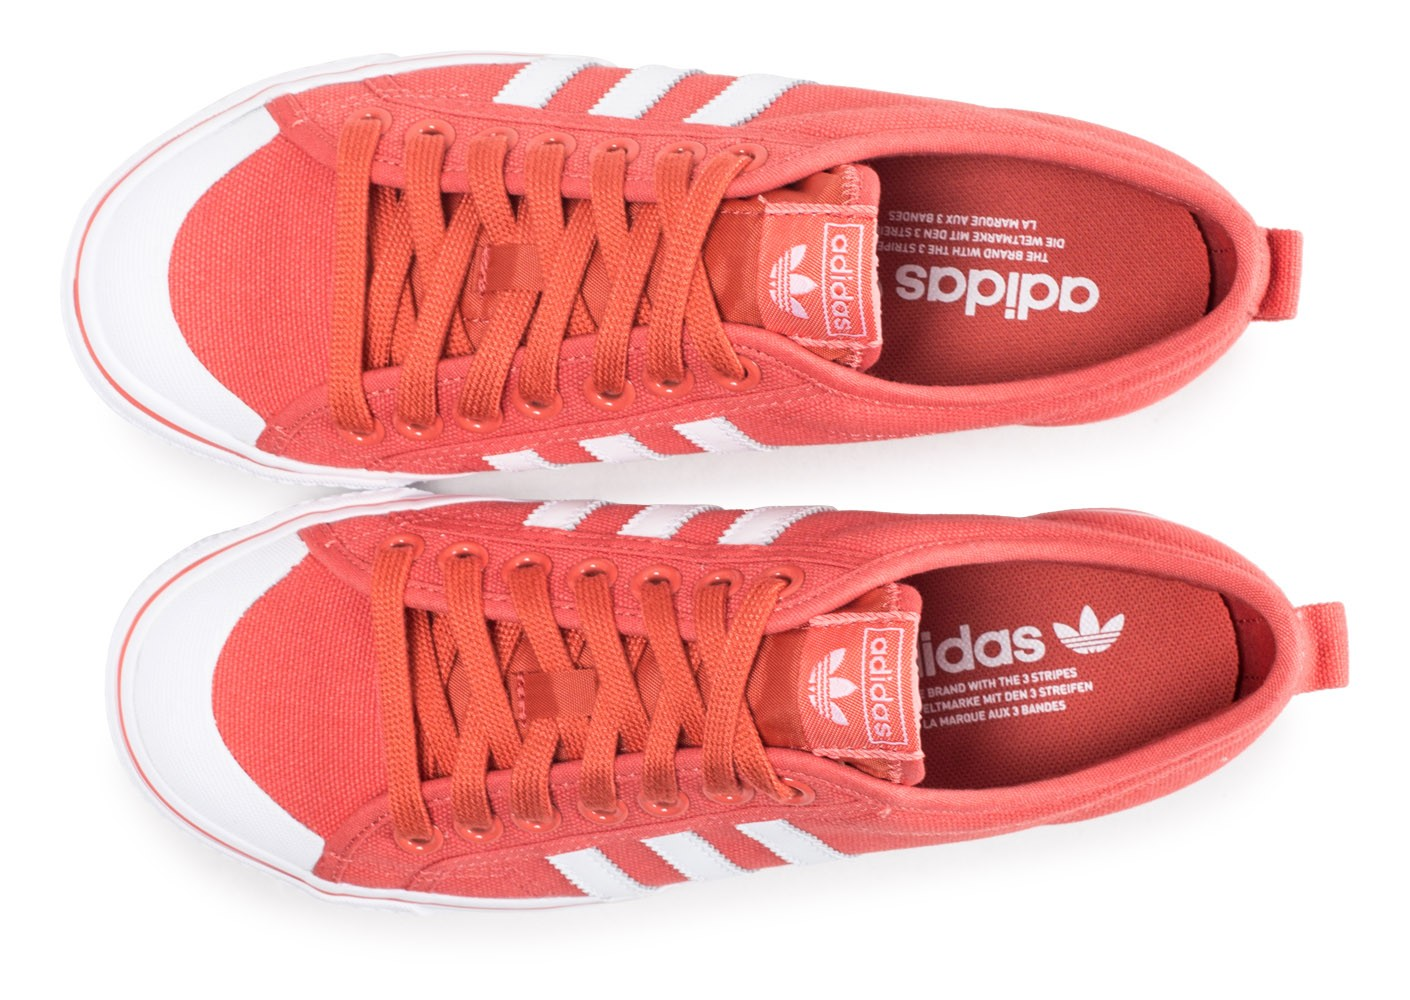 official site nice cheap competitive price adidas Nizza rouge - Chaussures Baskets homme - Chausport